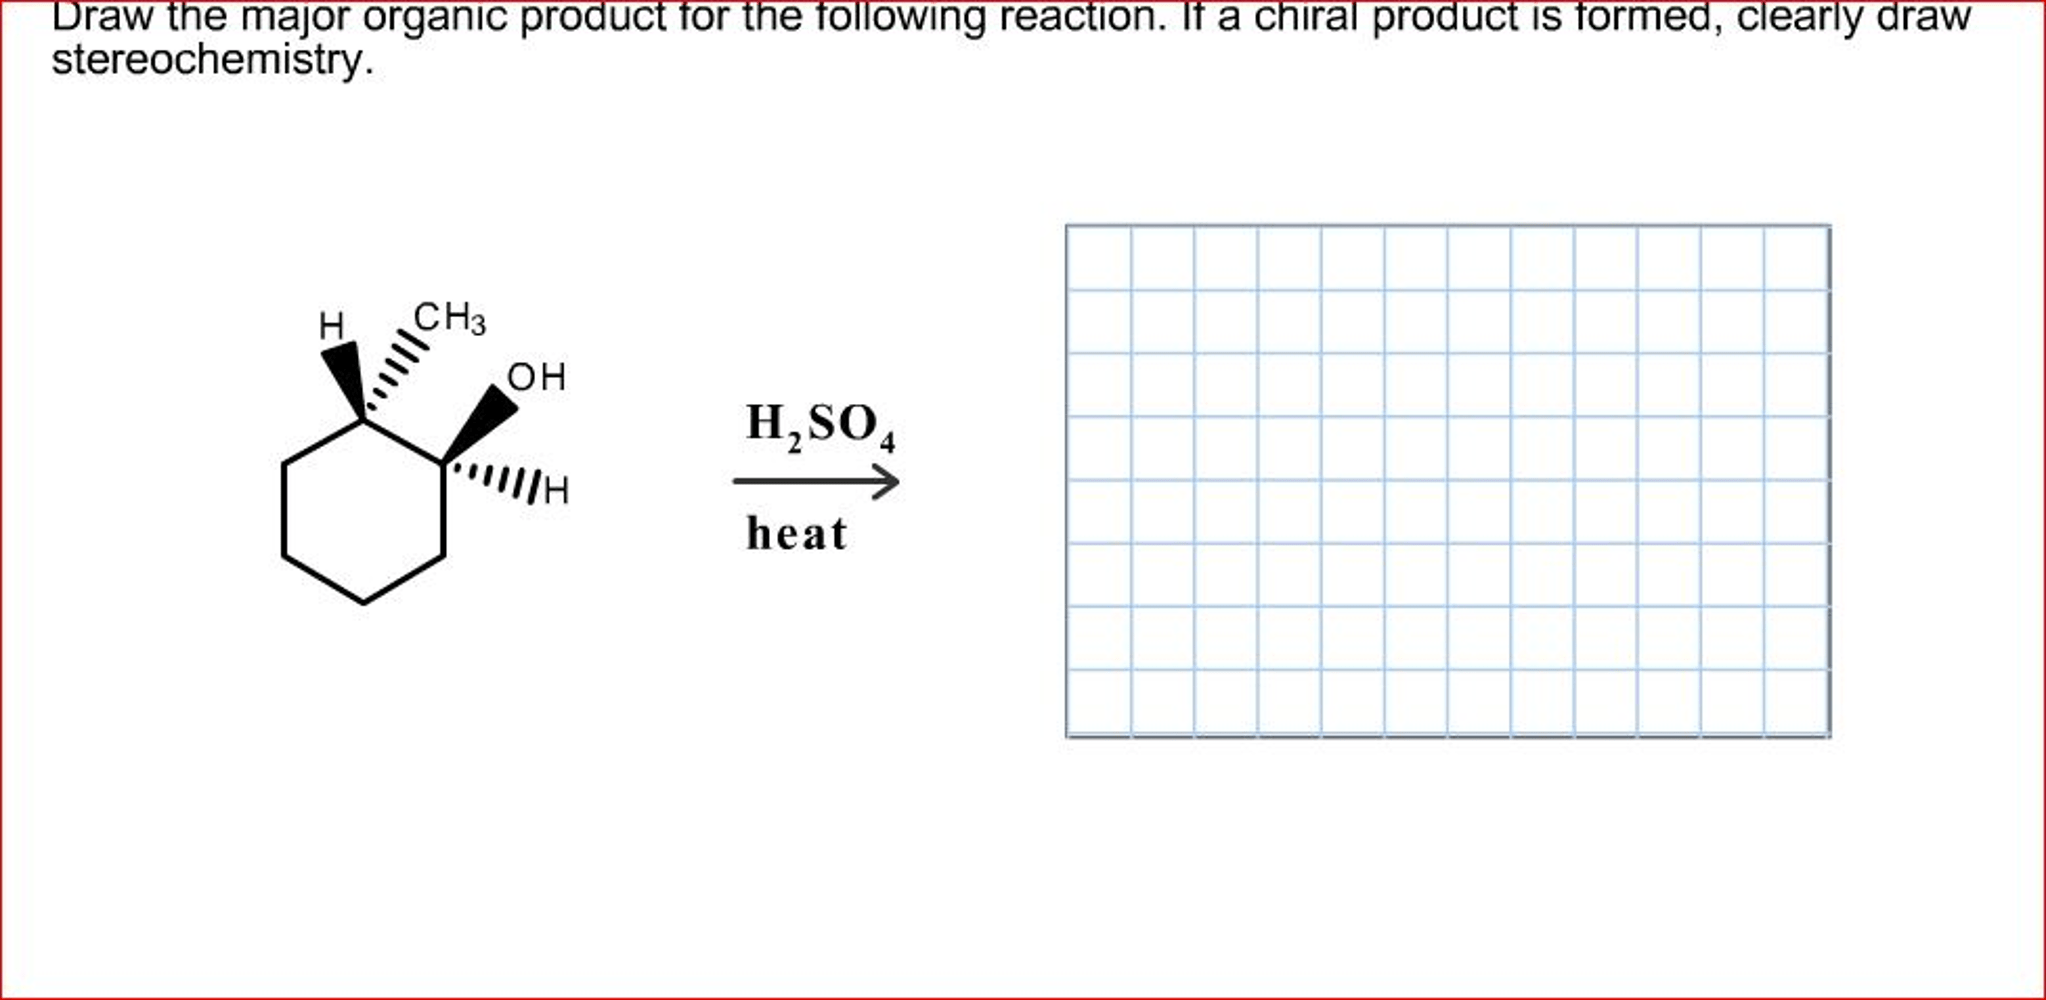 Solved: Draw The Major Organic Product For The Following R